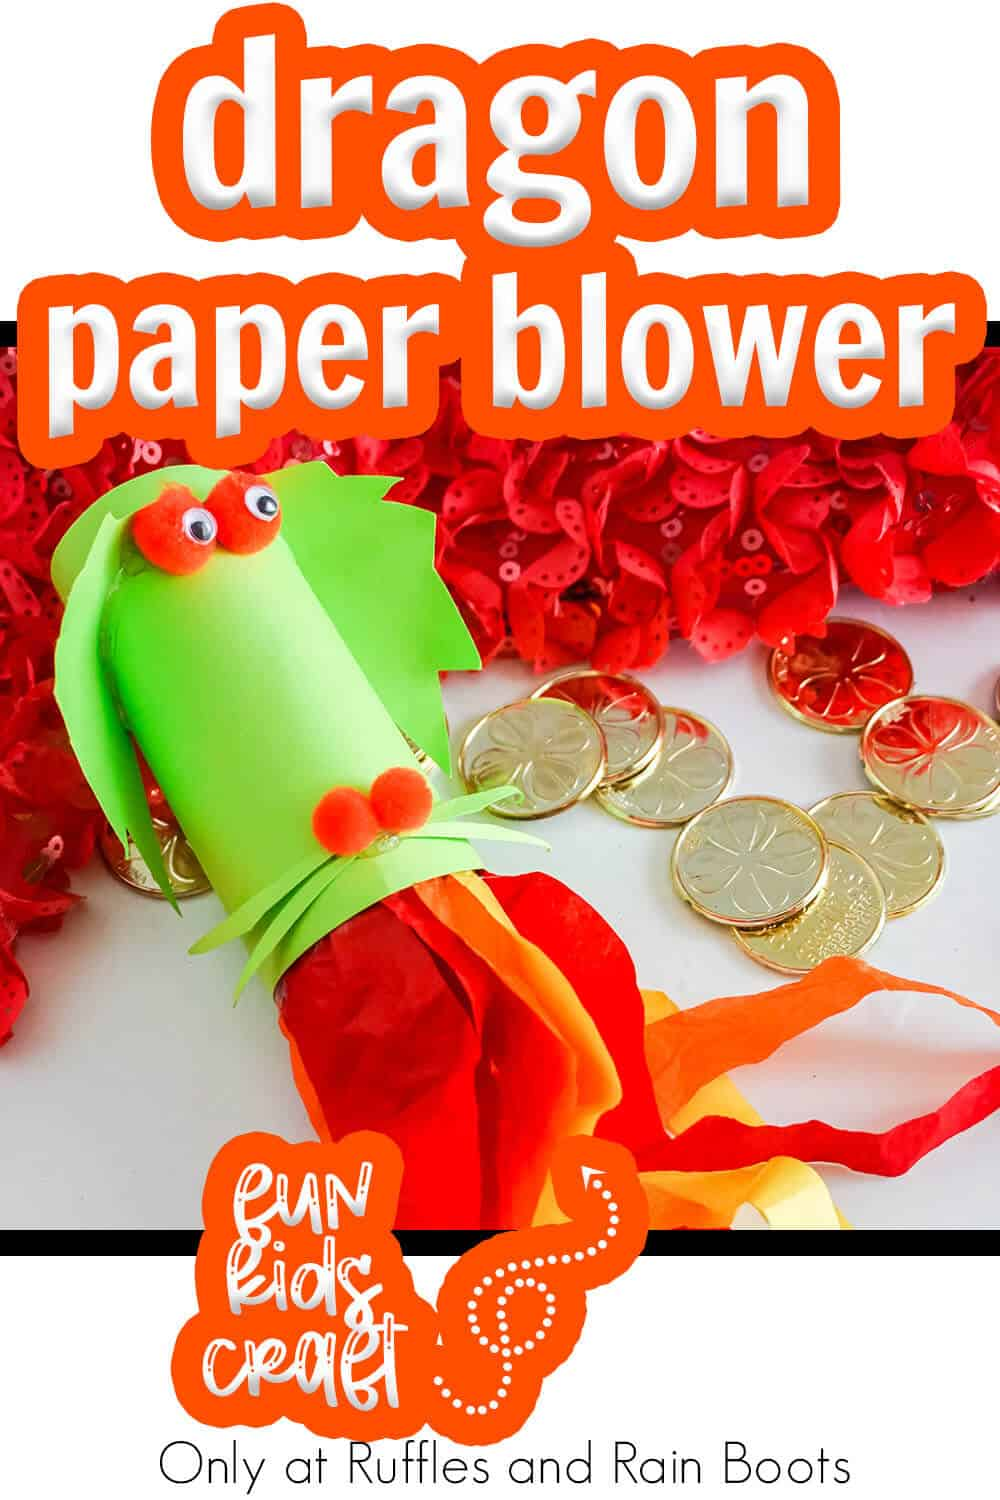 kids craft fire breathing dragon blower with text which reads dragon paper blower kids paper craft